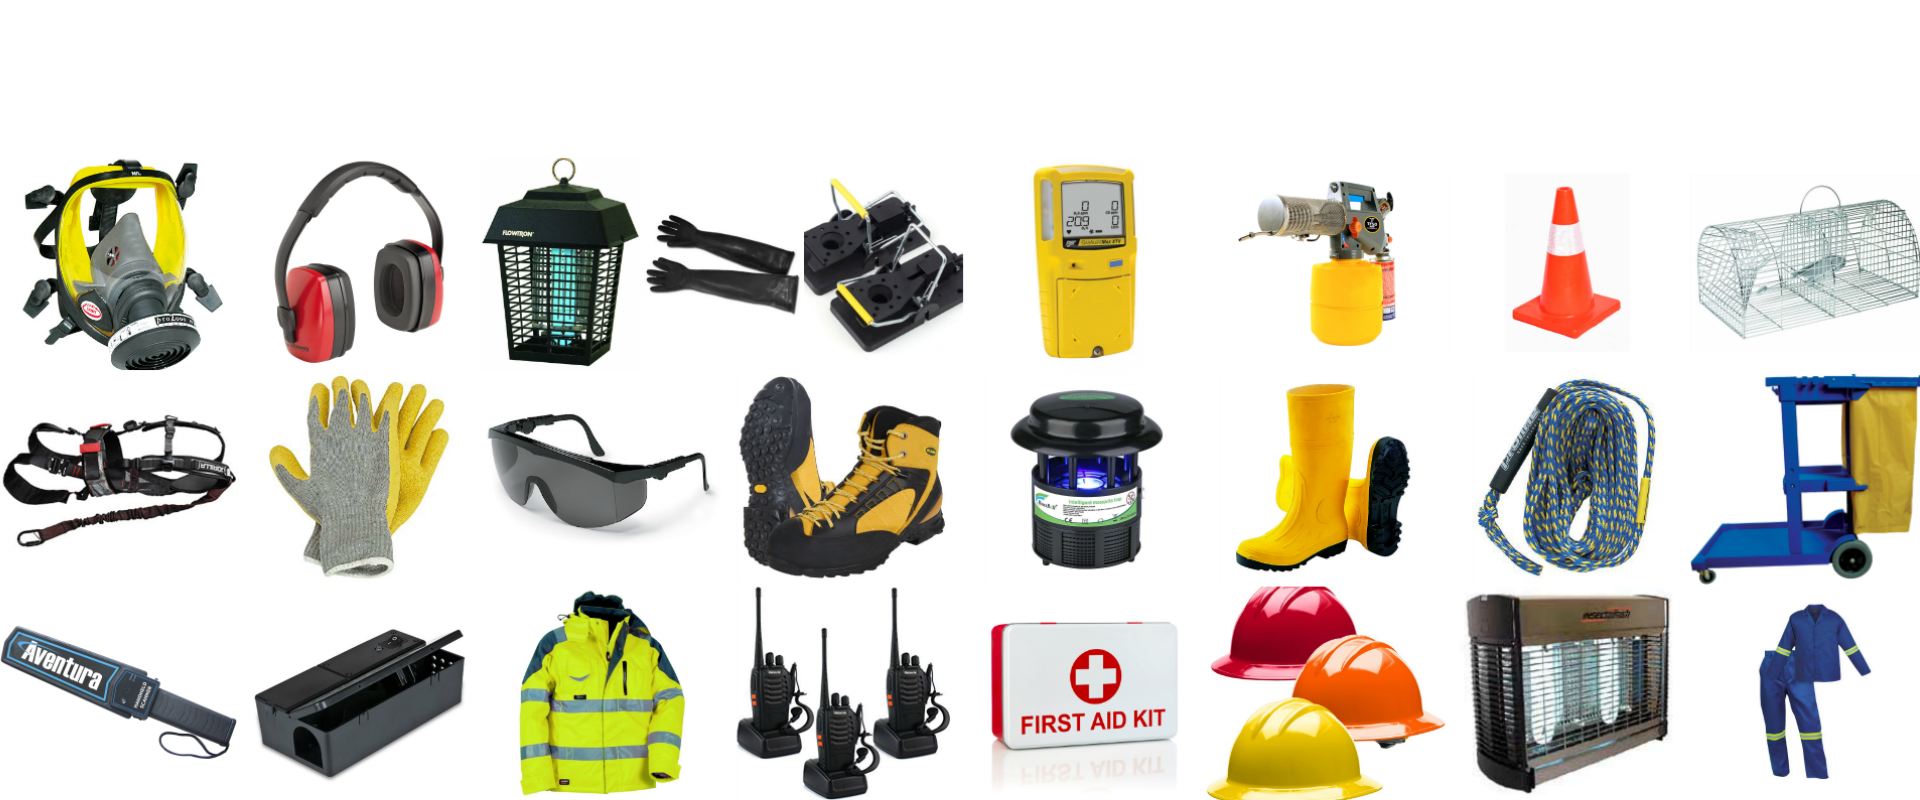 Termipest Limited - Safety Equipment & Pest Control Suppliers in Kenya